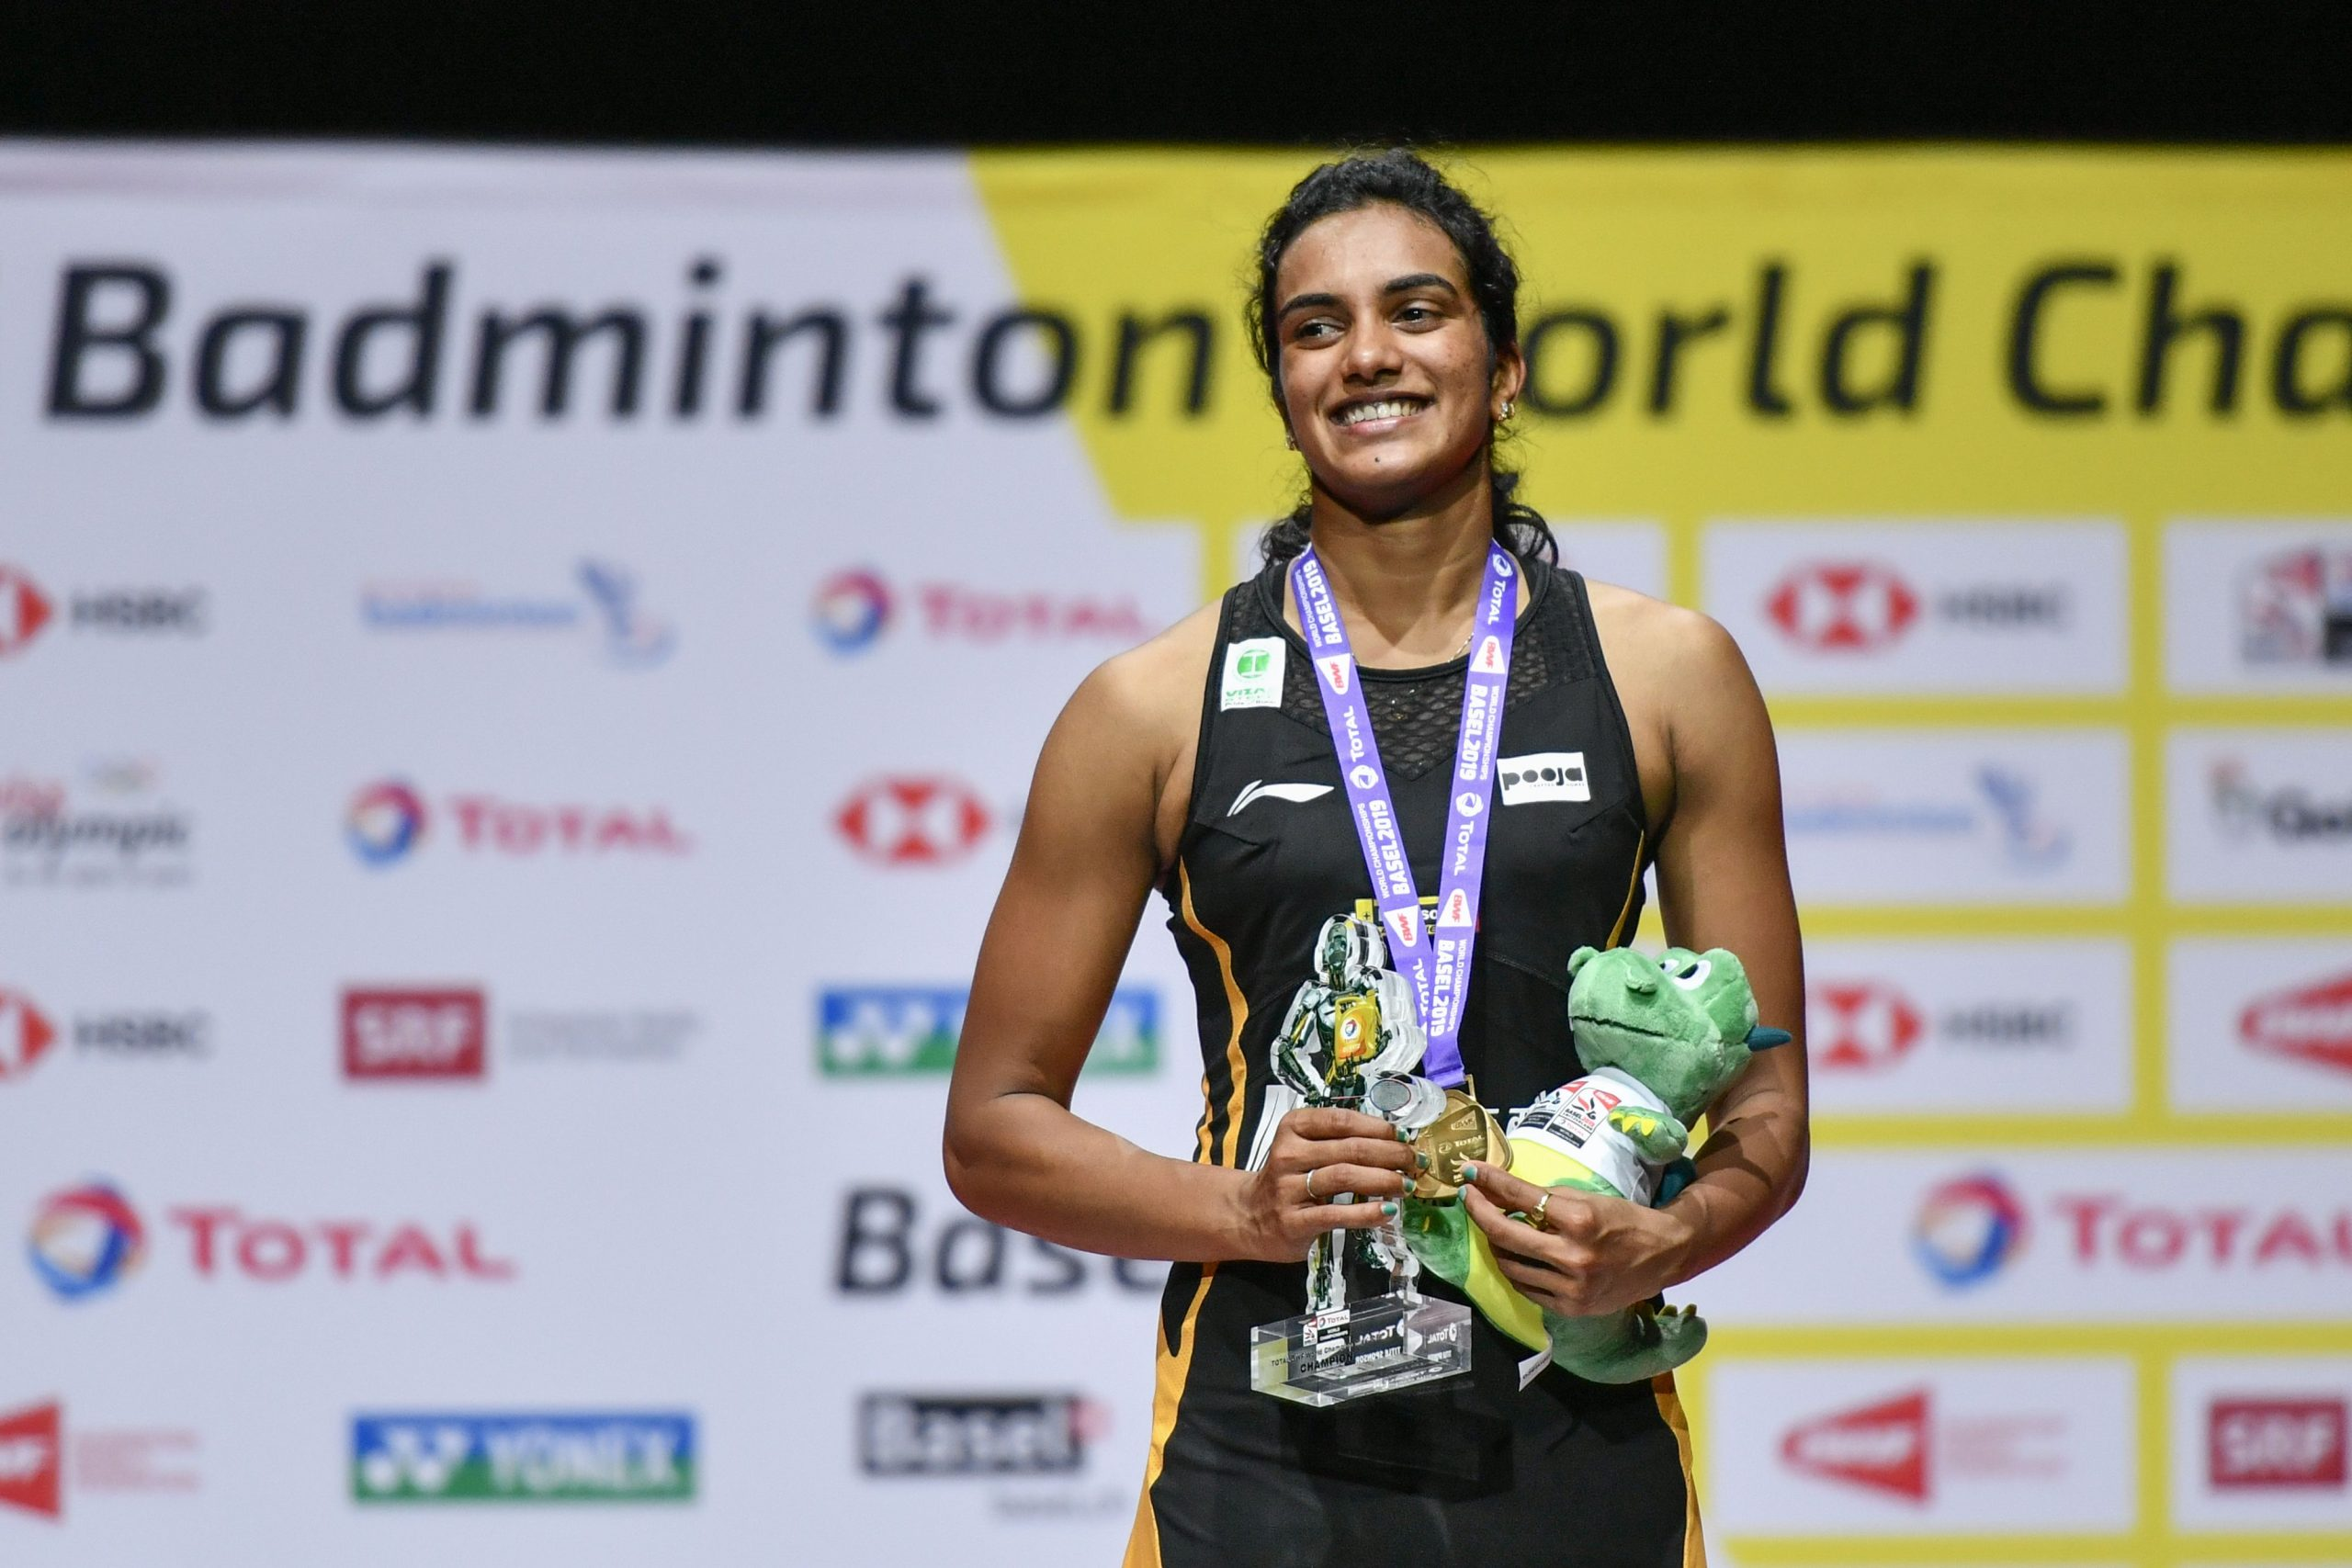 PV Sindhu (FABRICE COFFRINI/AFP via Getty Images)